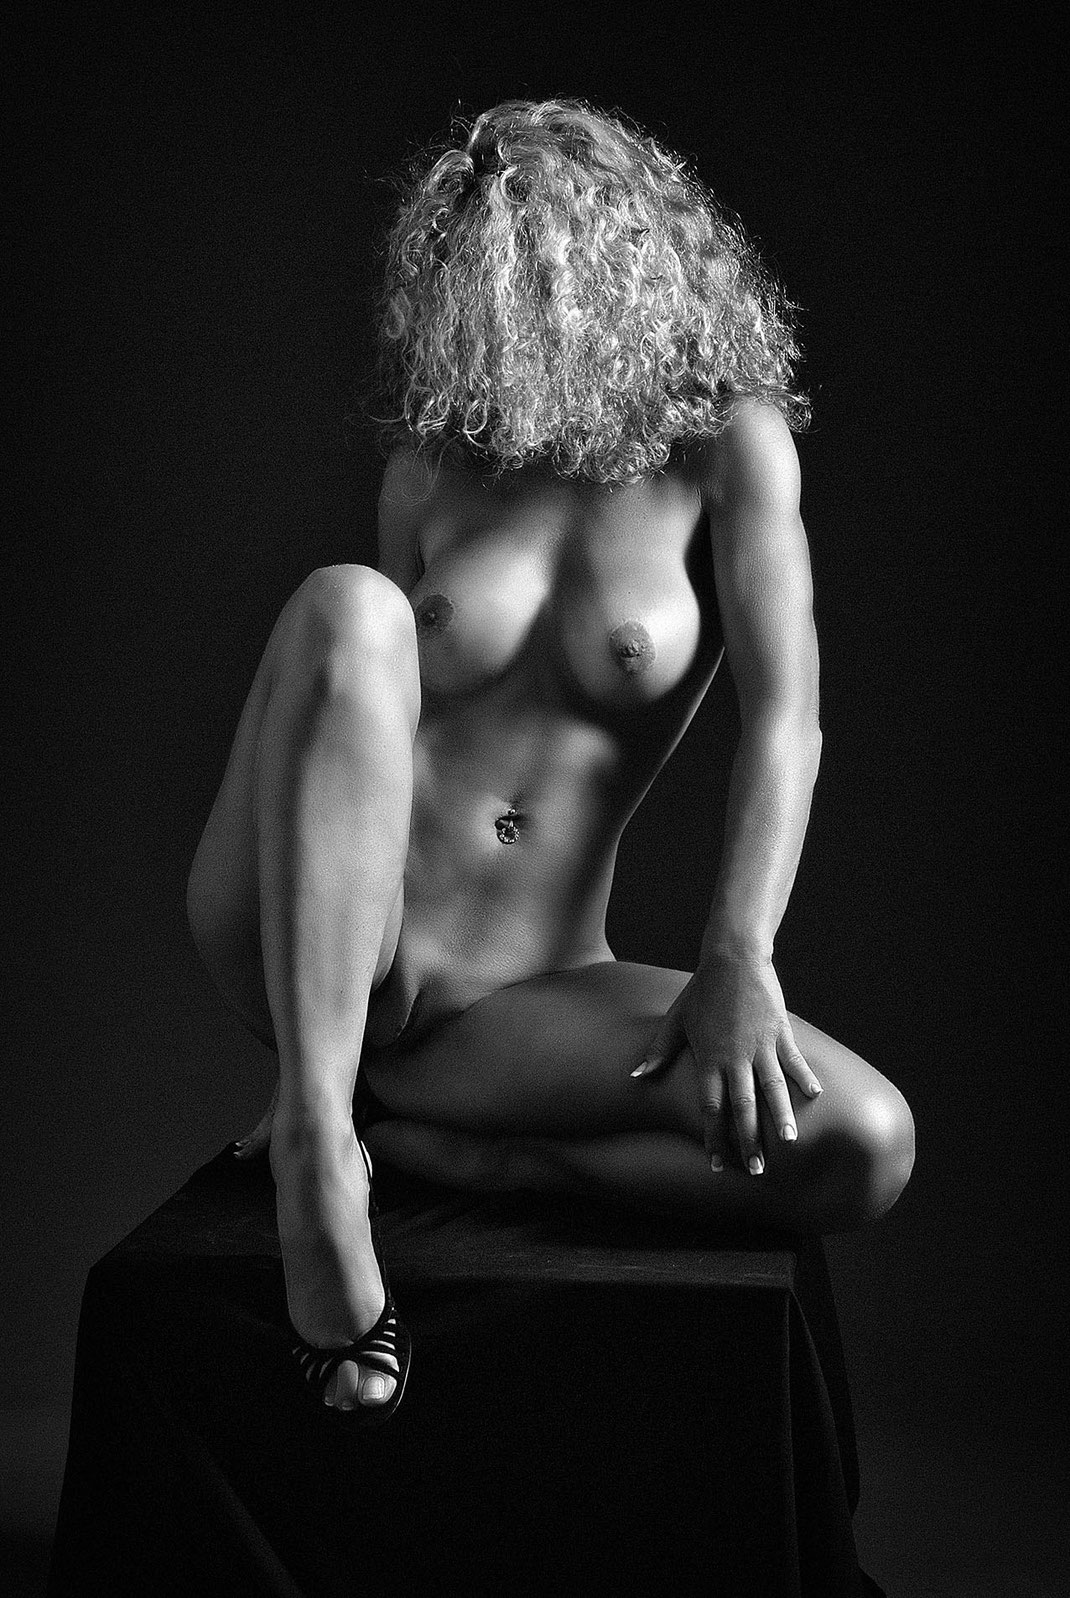 Fetish and Fine Art Nude Photography by Martin Boelt